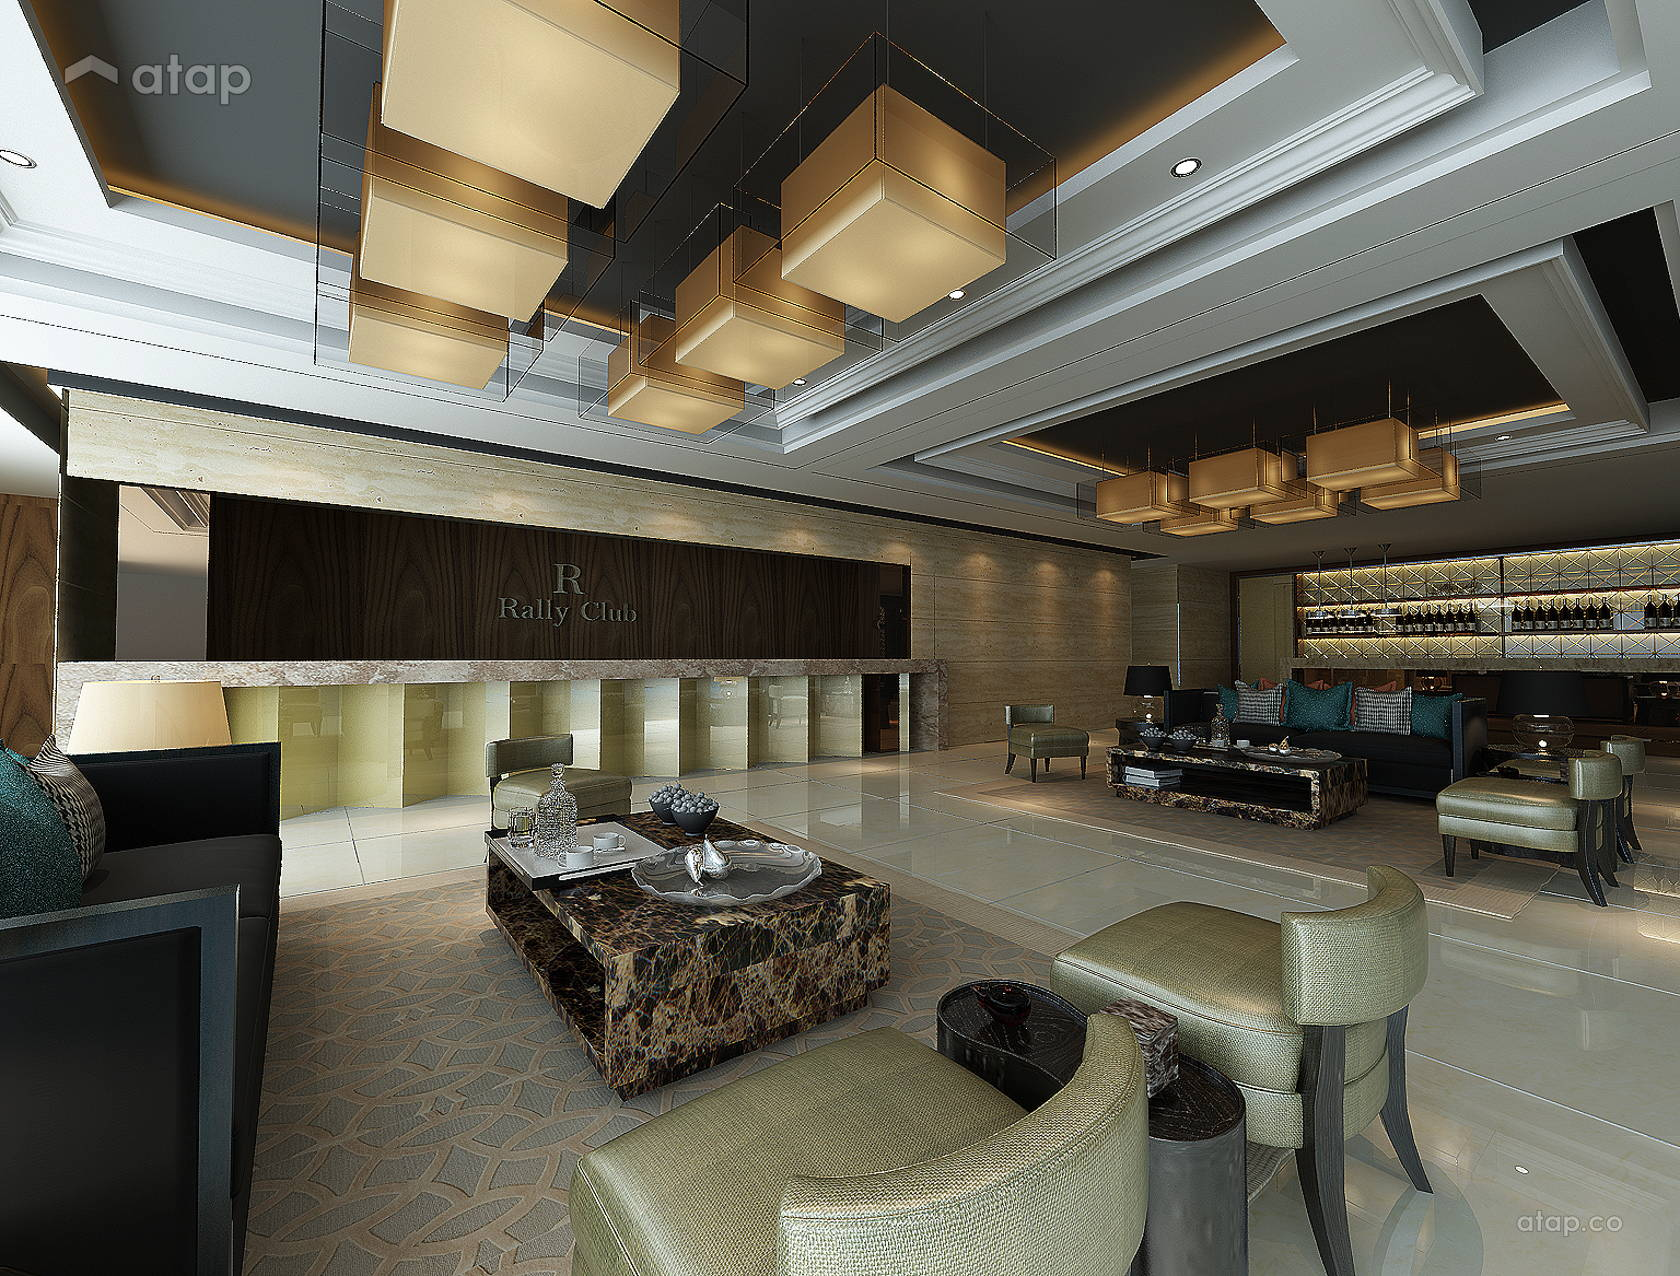 Premium Club Melaka interior design renovation ideas photos and